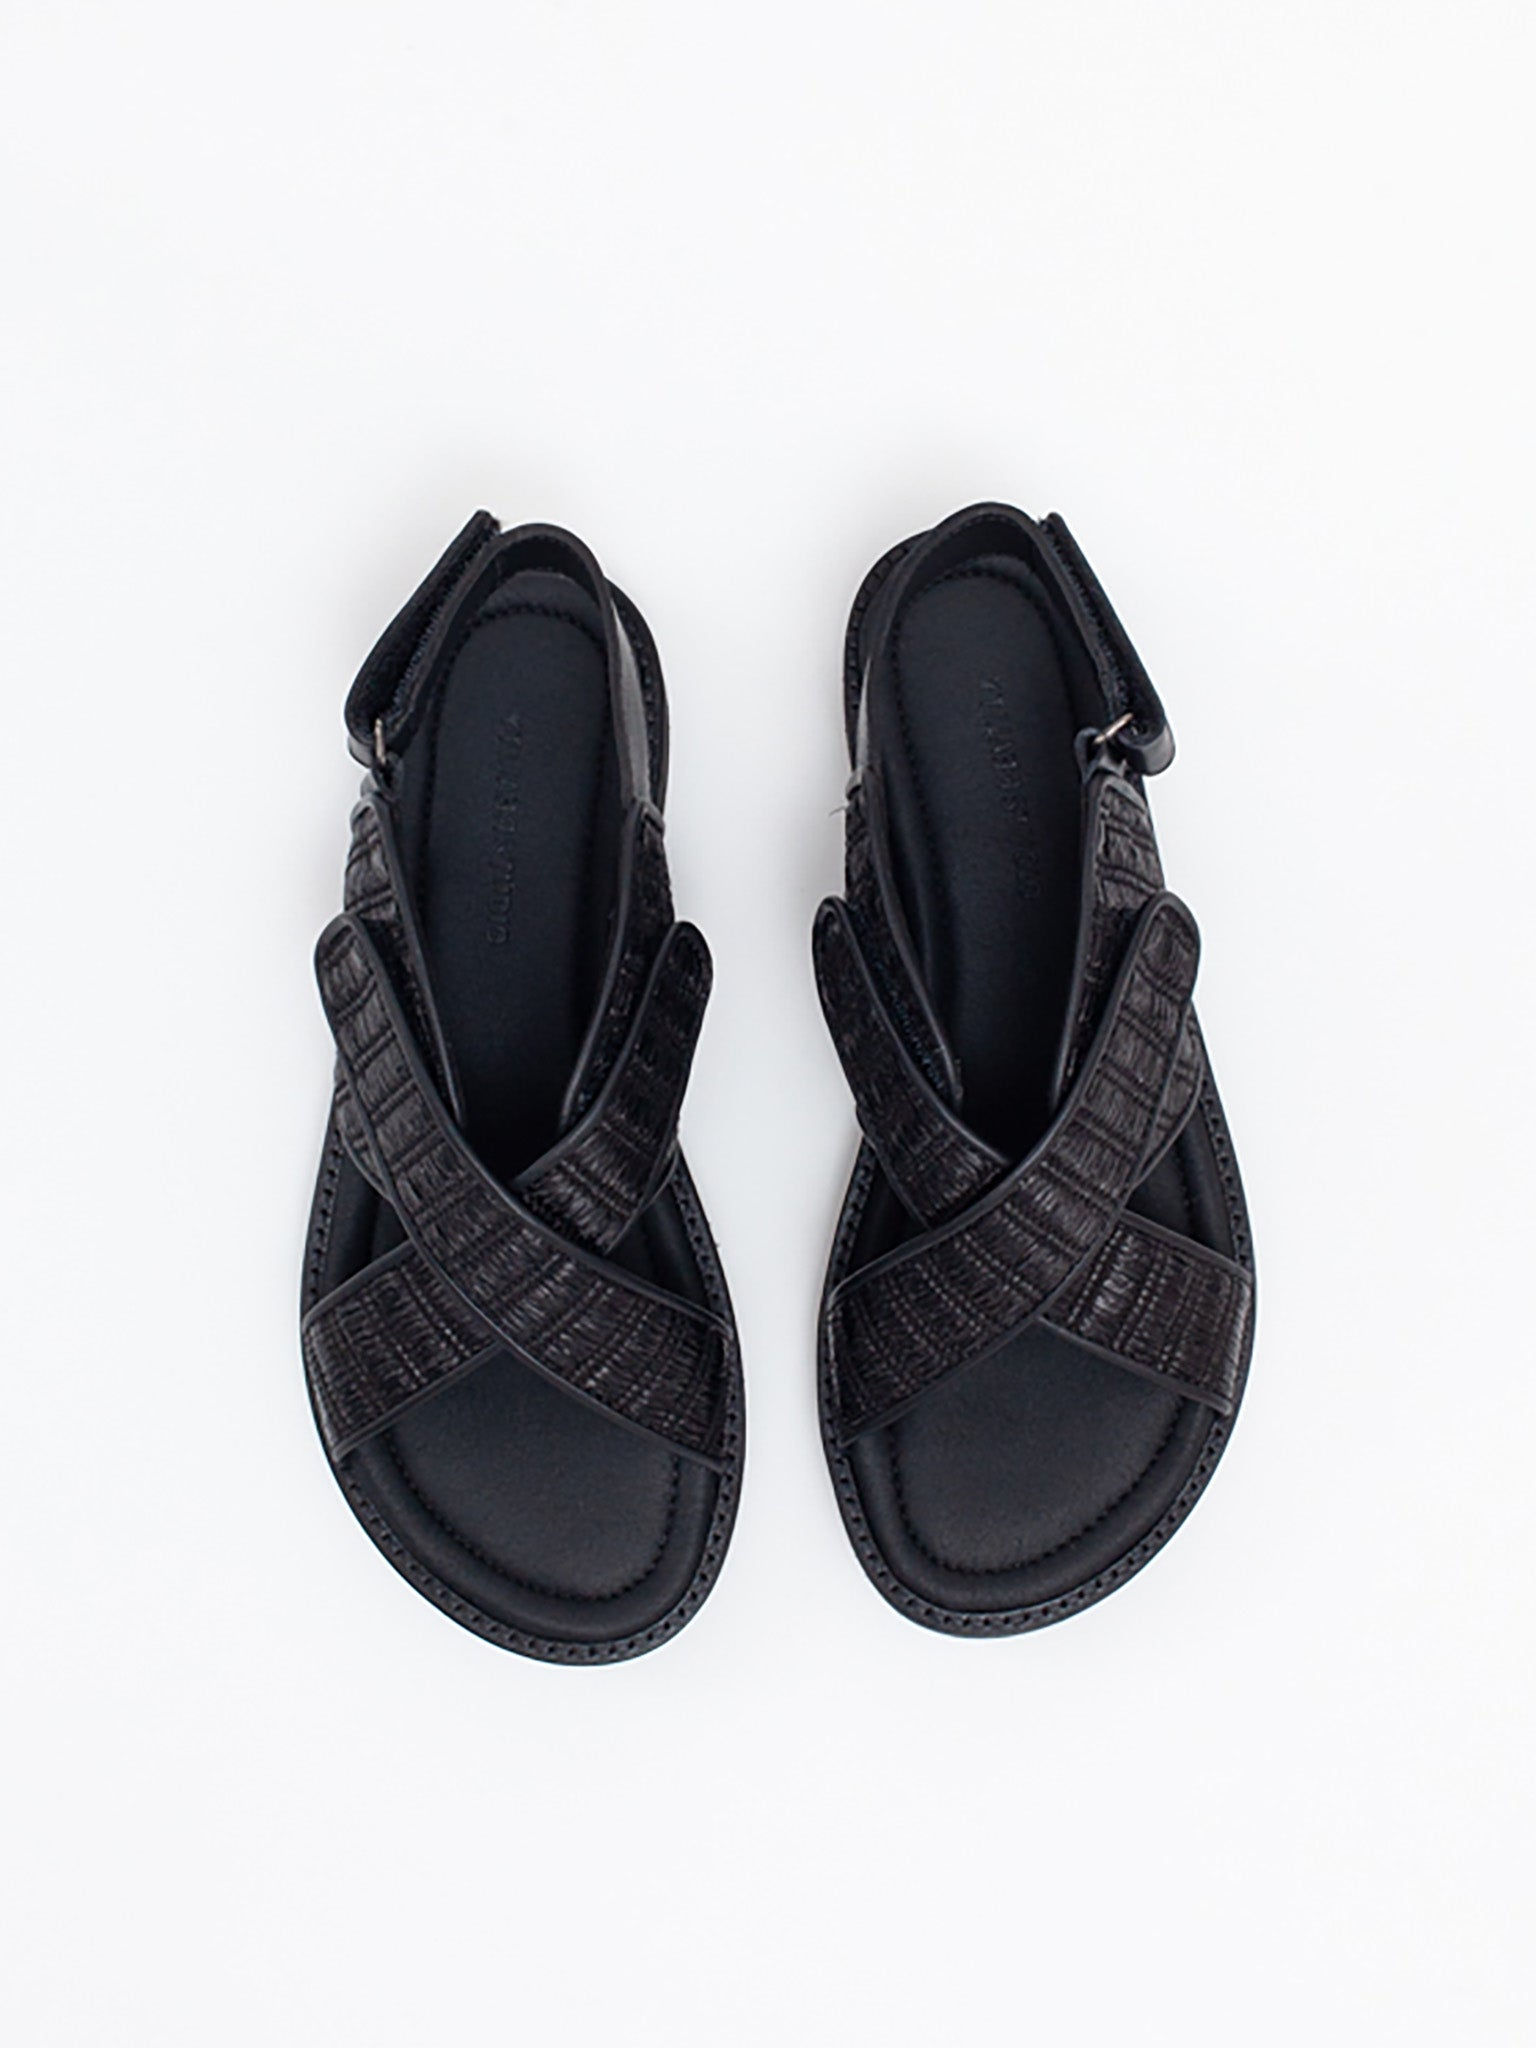 Reality Studio There Sandals Black